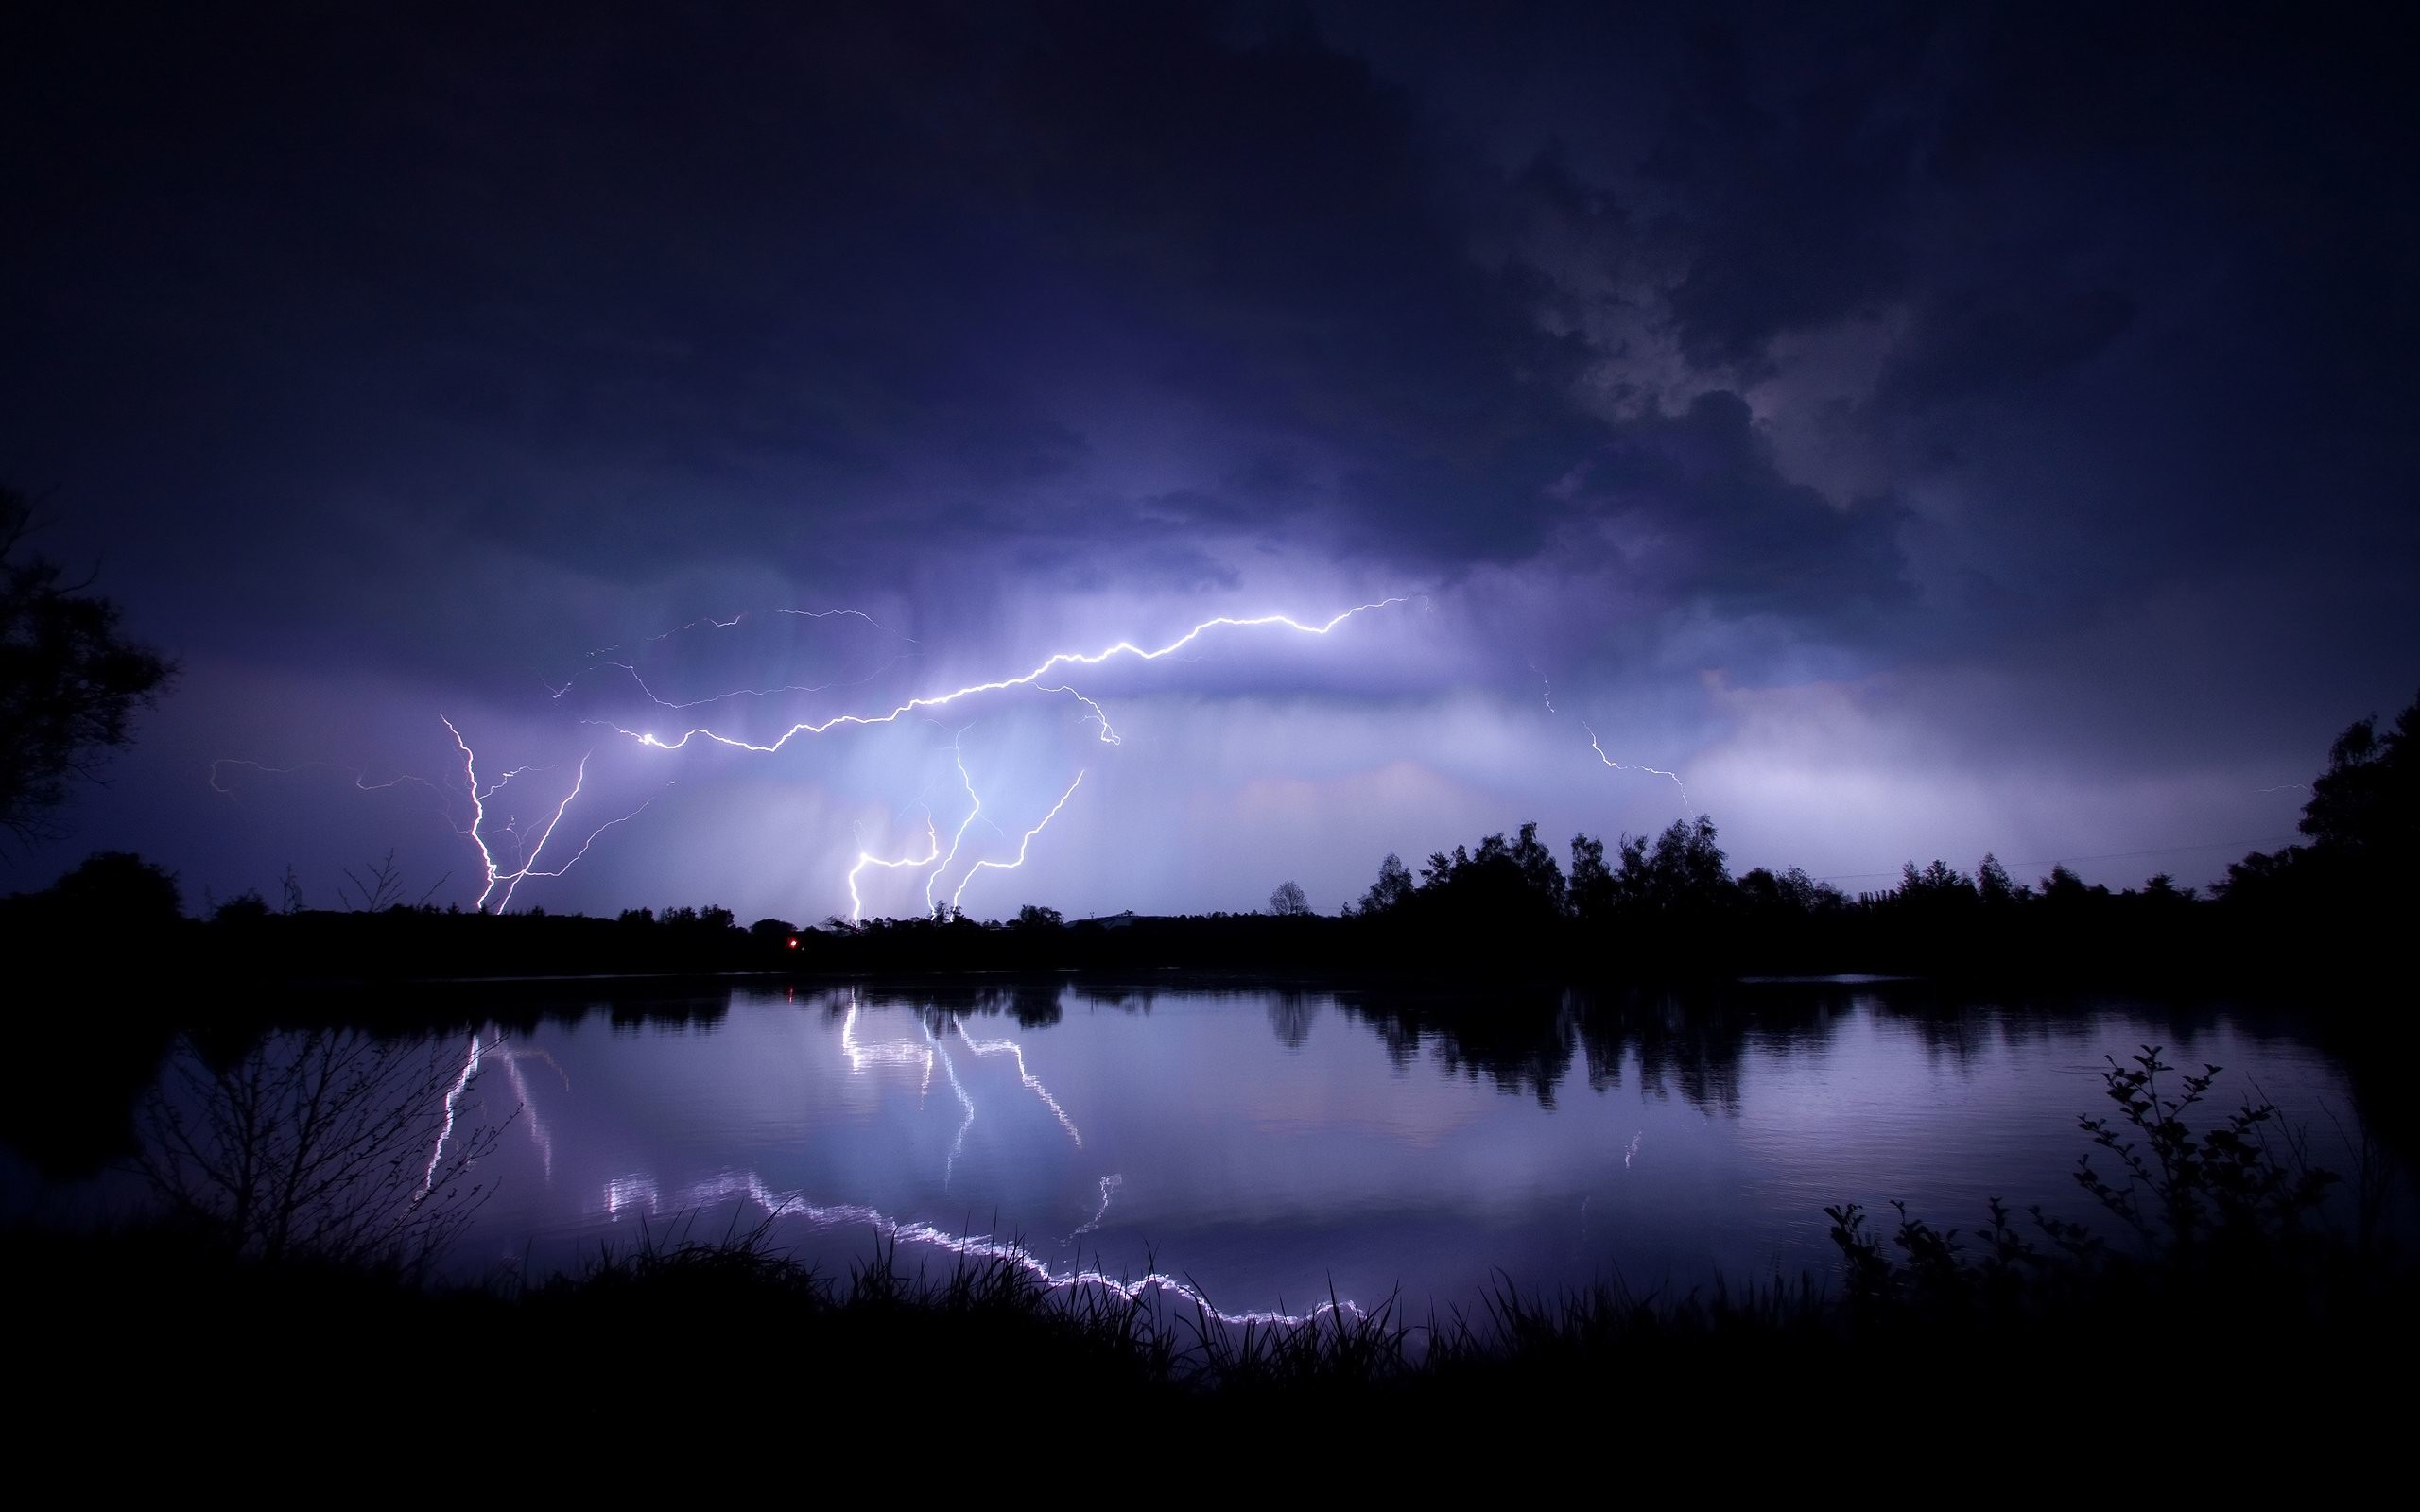 2560x1600 Storms for your Desktop Wallpaper http://www.thomascraigconsulting.